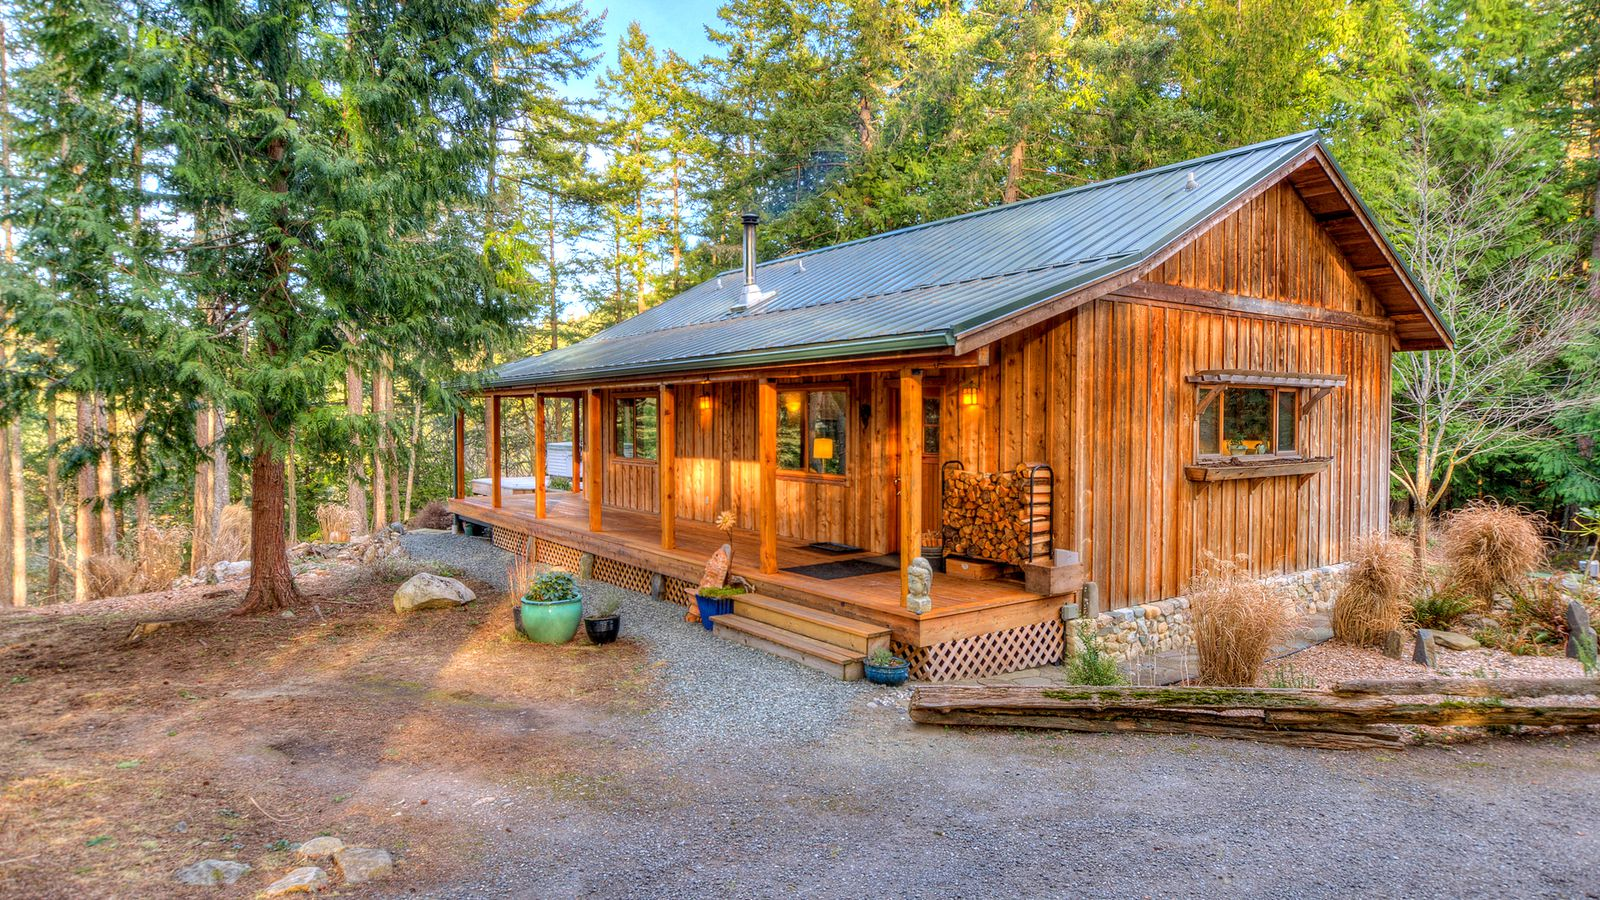 An Orcas Cabin And Yurt For The Perfect Island Lifestyle